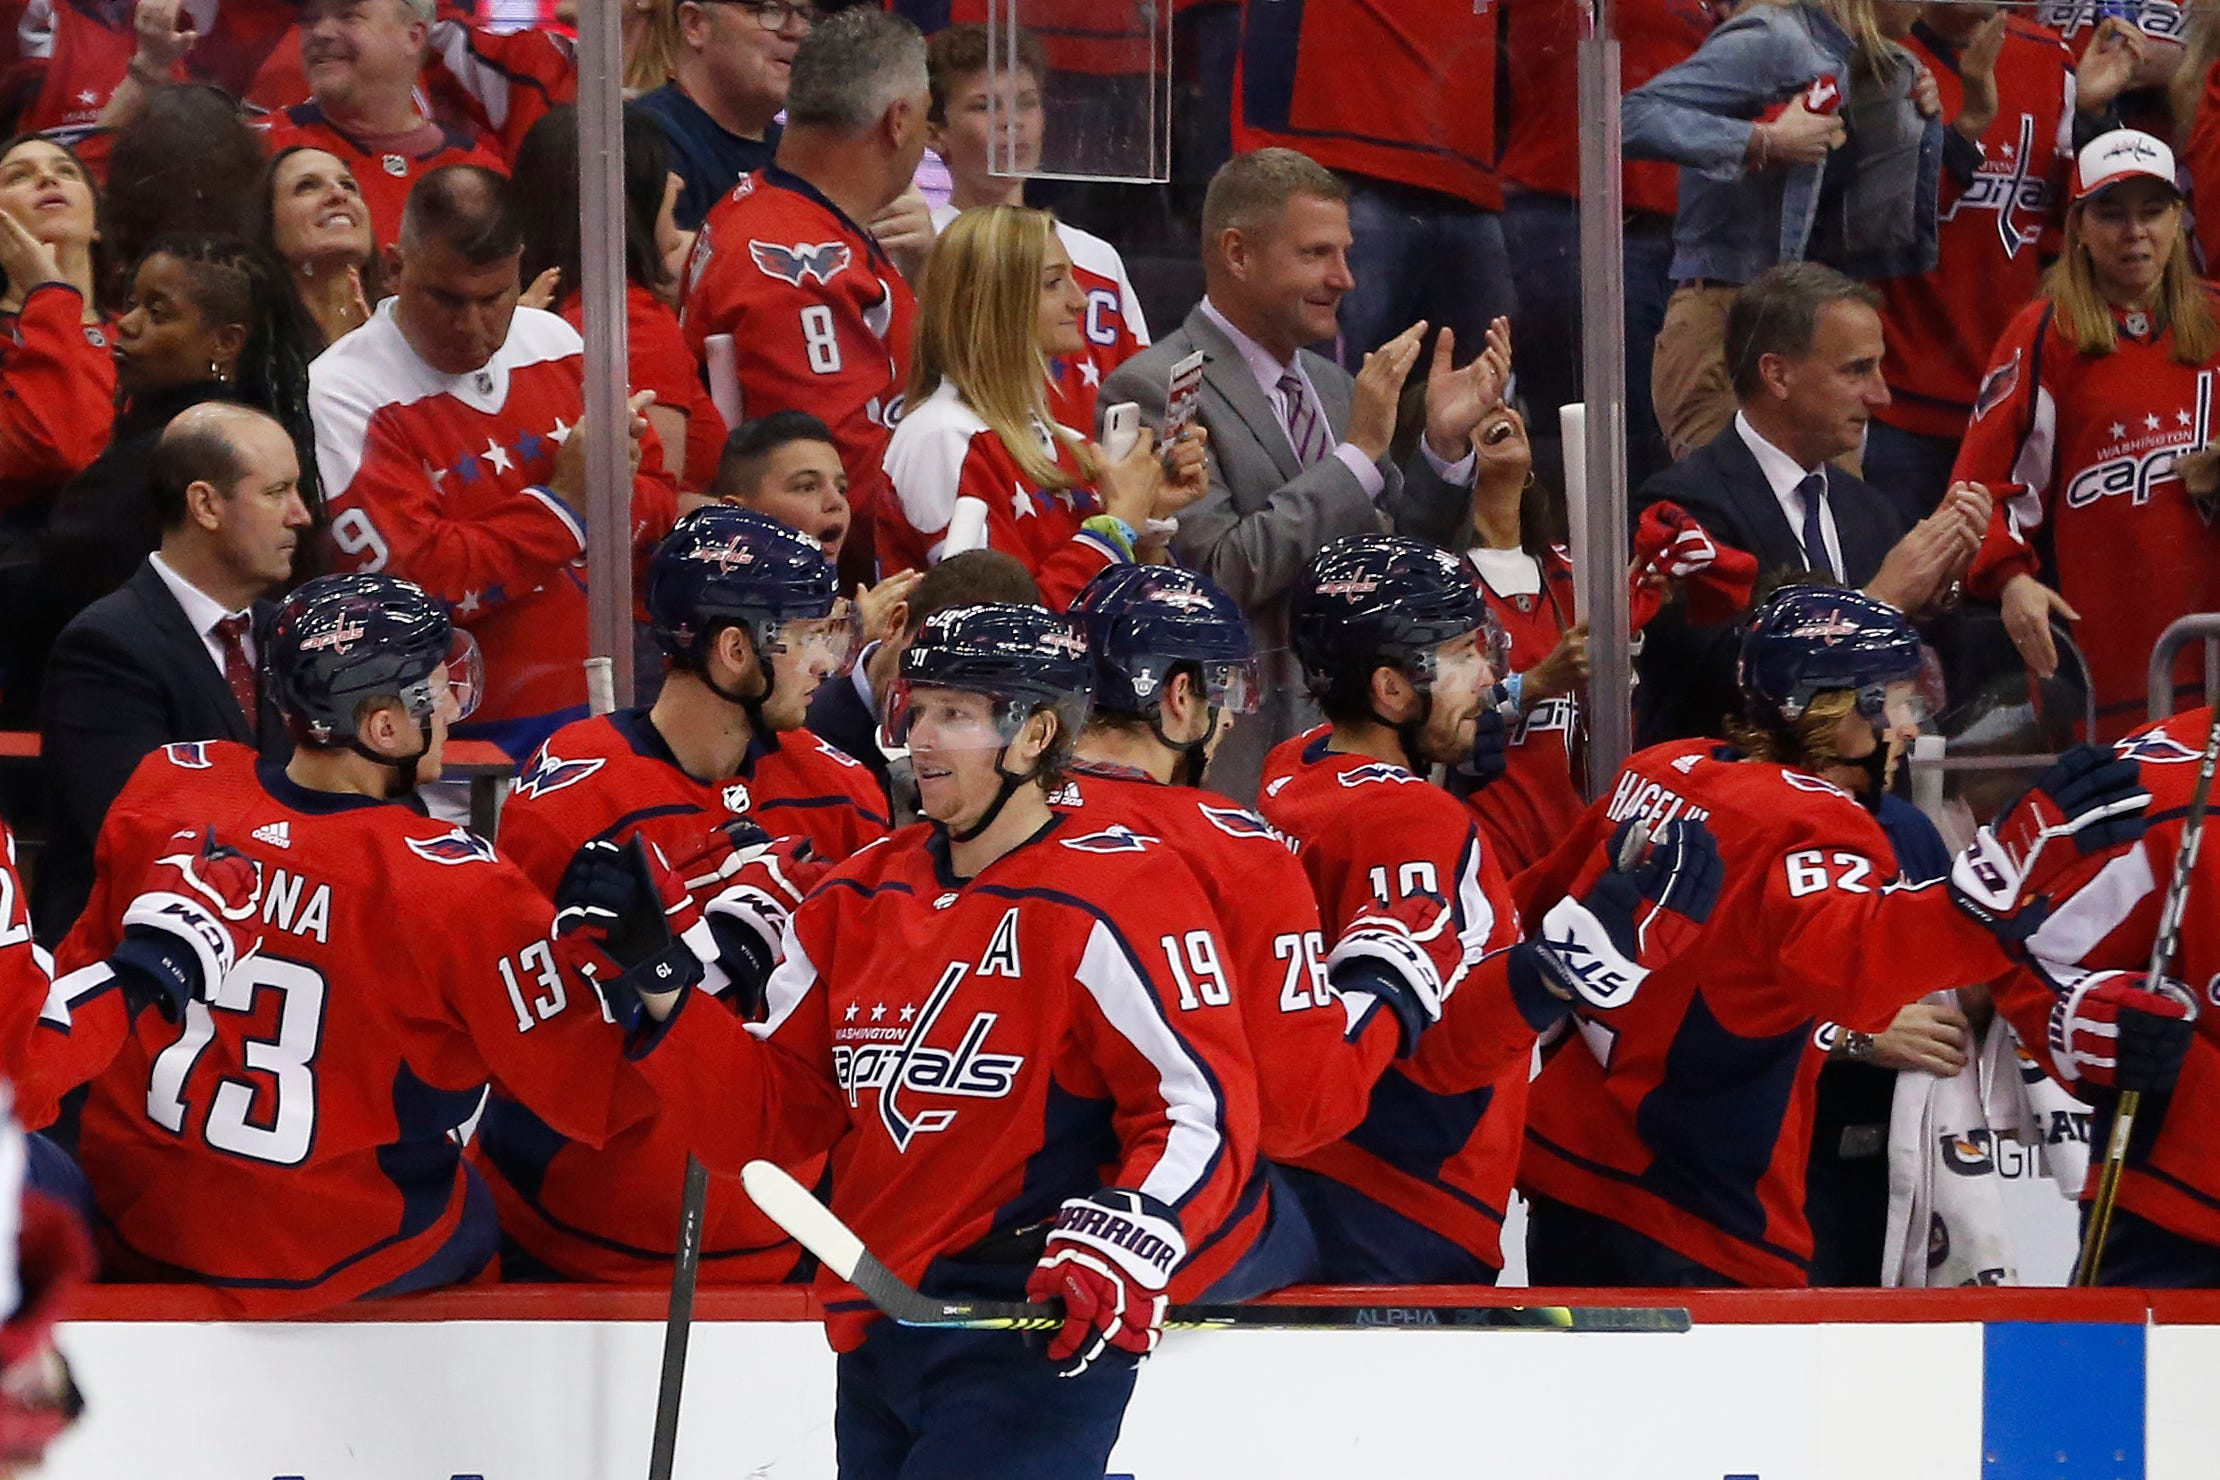 Washington Capitals rout Carolina Hurricanes in Game 5 to take NHL playoff series lead